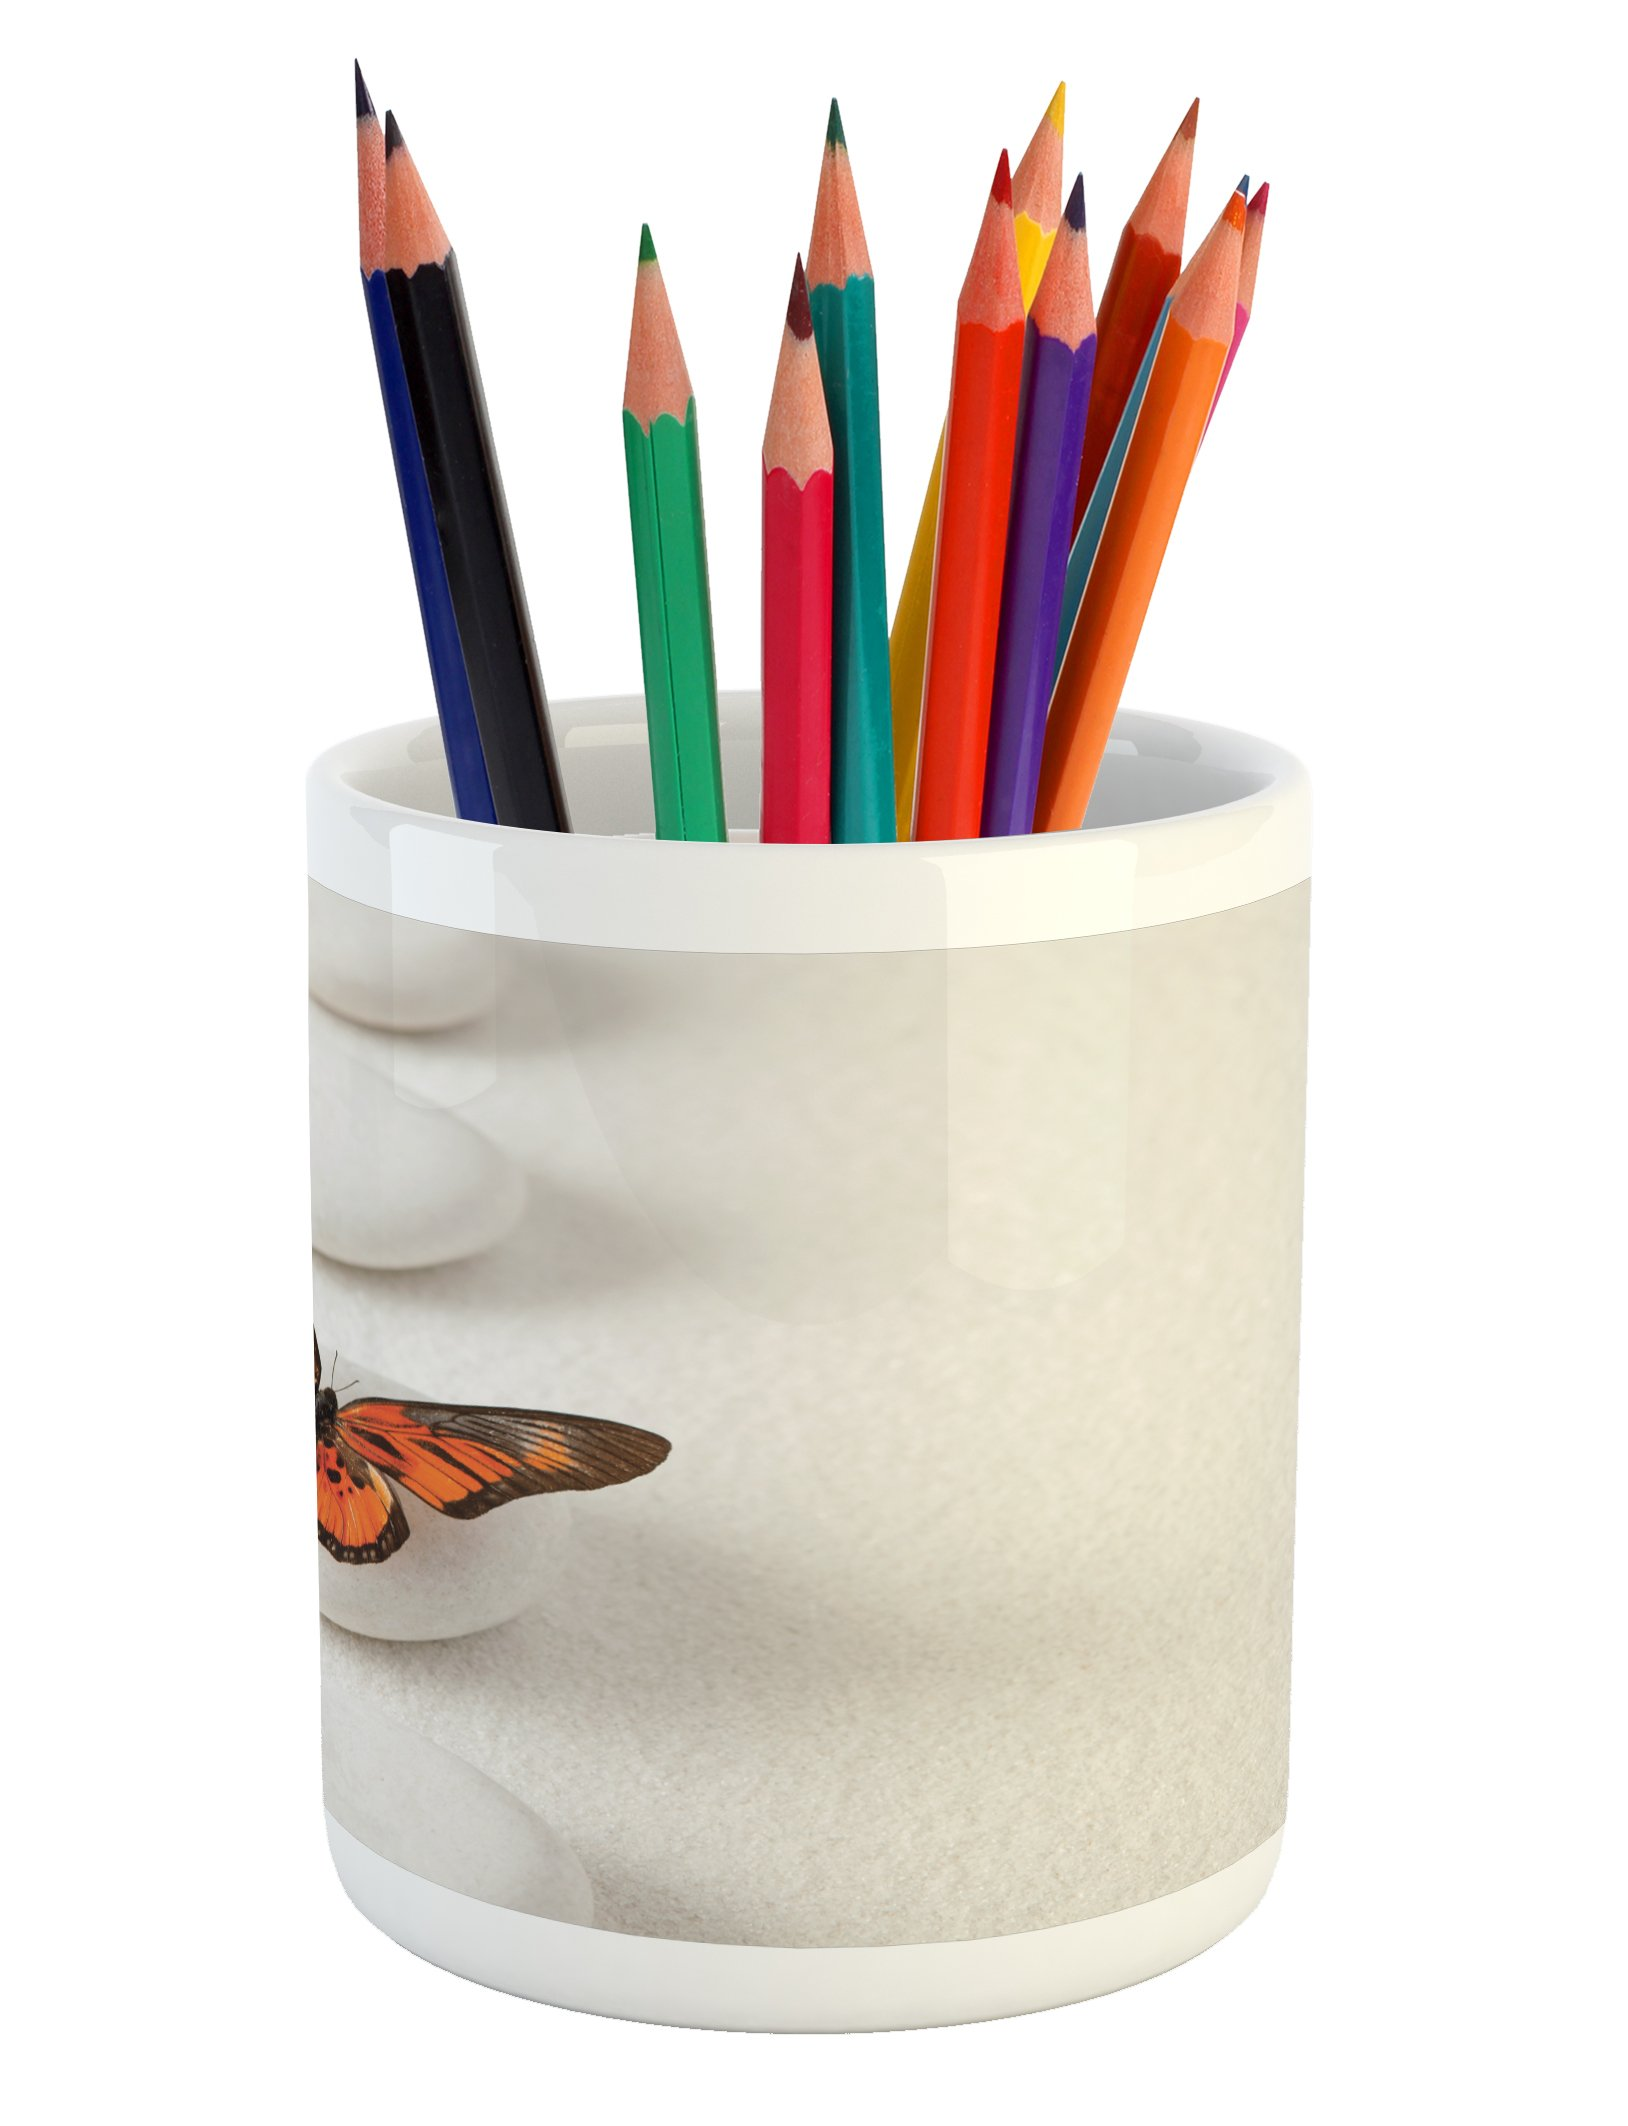 Ambesonne Spa Pencil Pen Holder, Plain Pattern with Butterfly and Rocks Wellness Purity Healing Serenity Bohemian, Printed Ceramic Pencil Pen Holder for Desk Office Accessory, White Orange